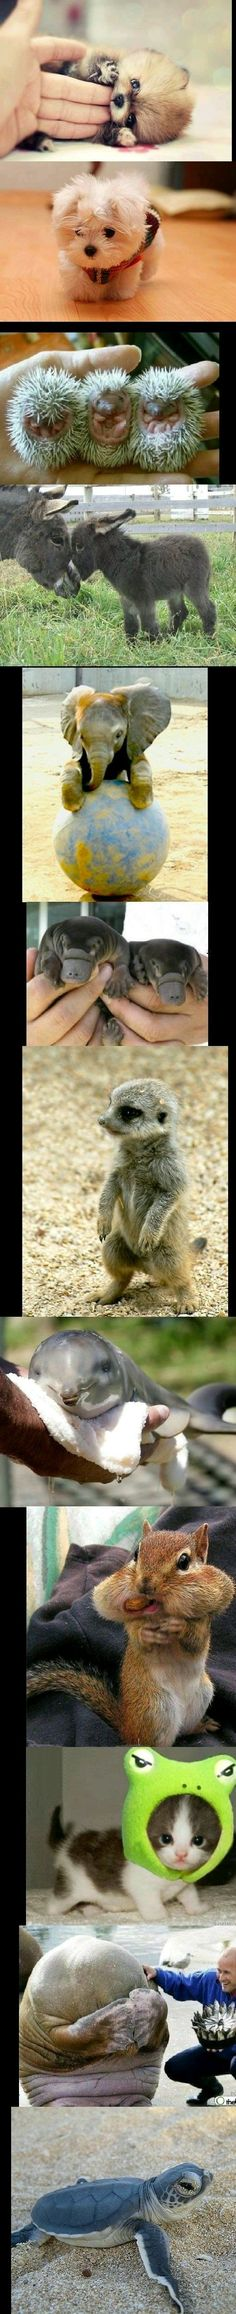 Baby animals are so cute I just want to cuddle up with every single one of them.